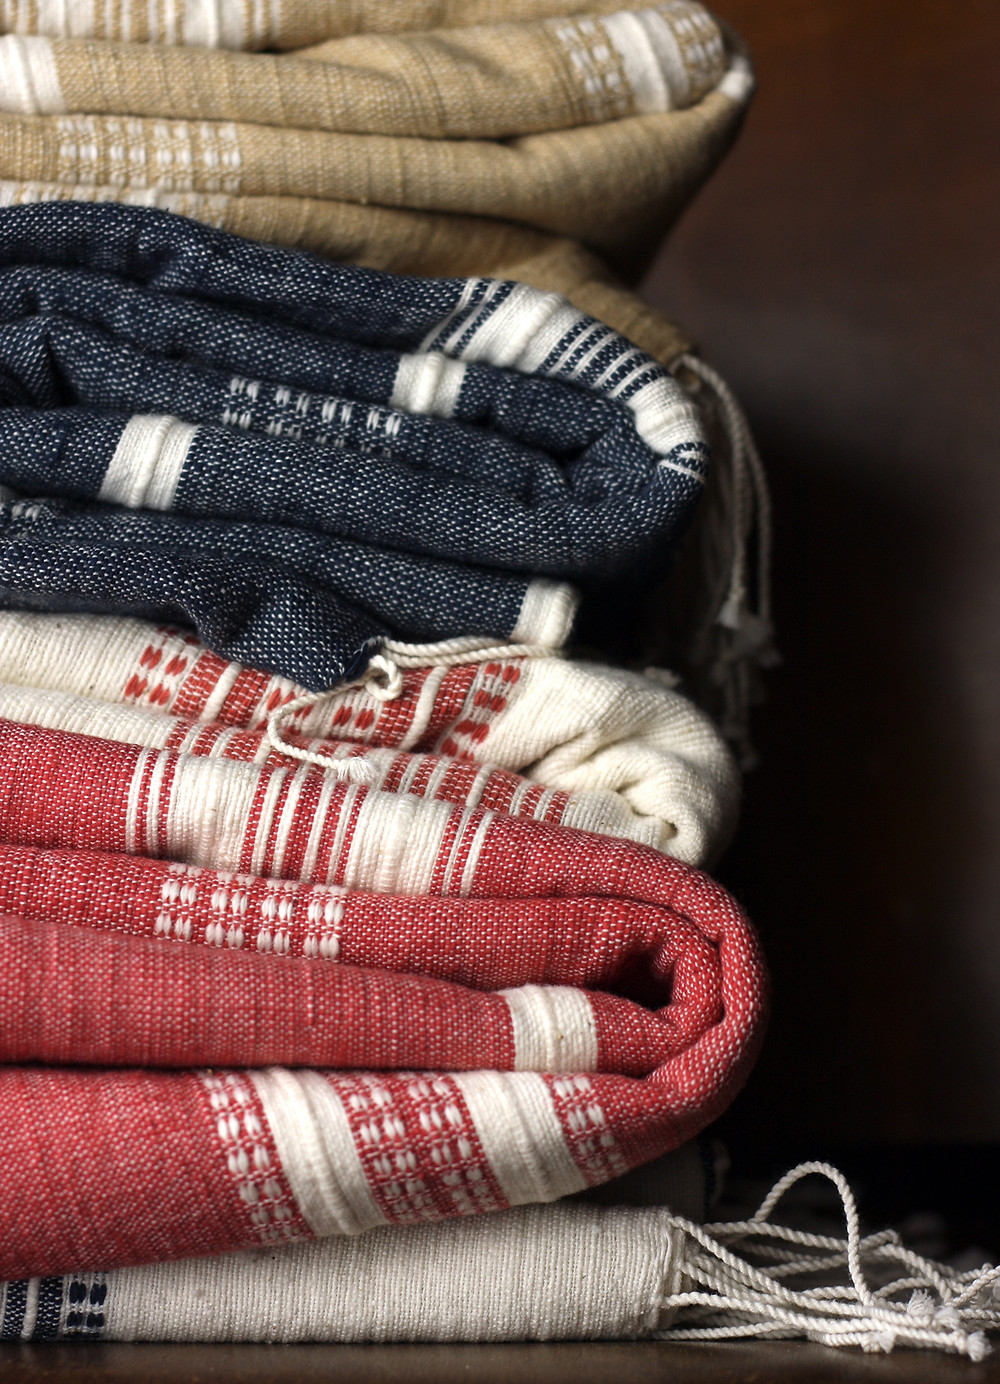 organic, handwoven blankets,  toxin-free and dye free textiles